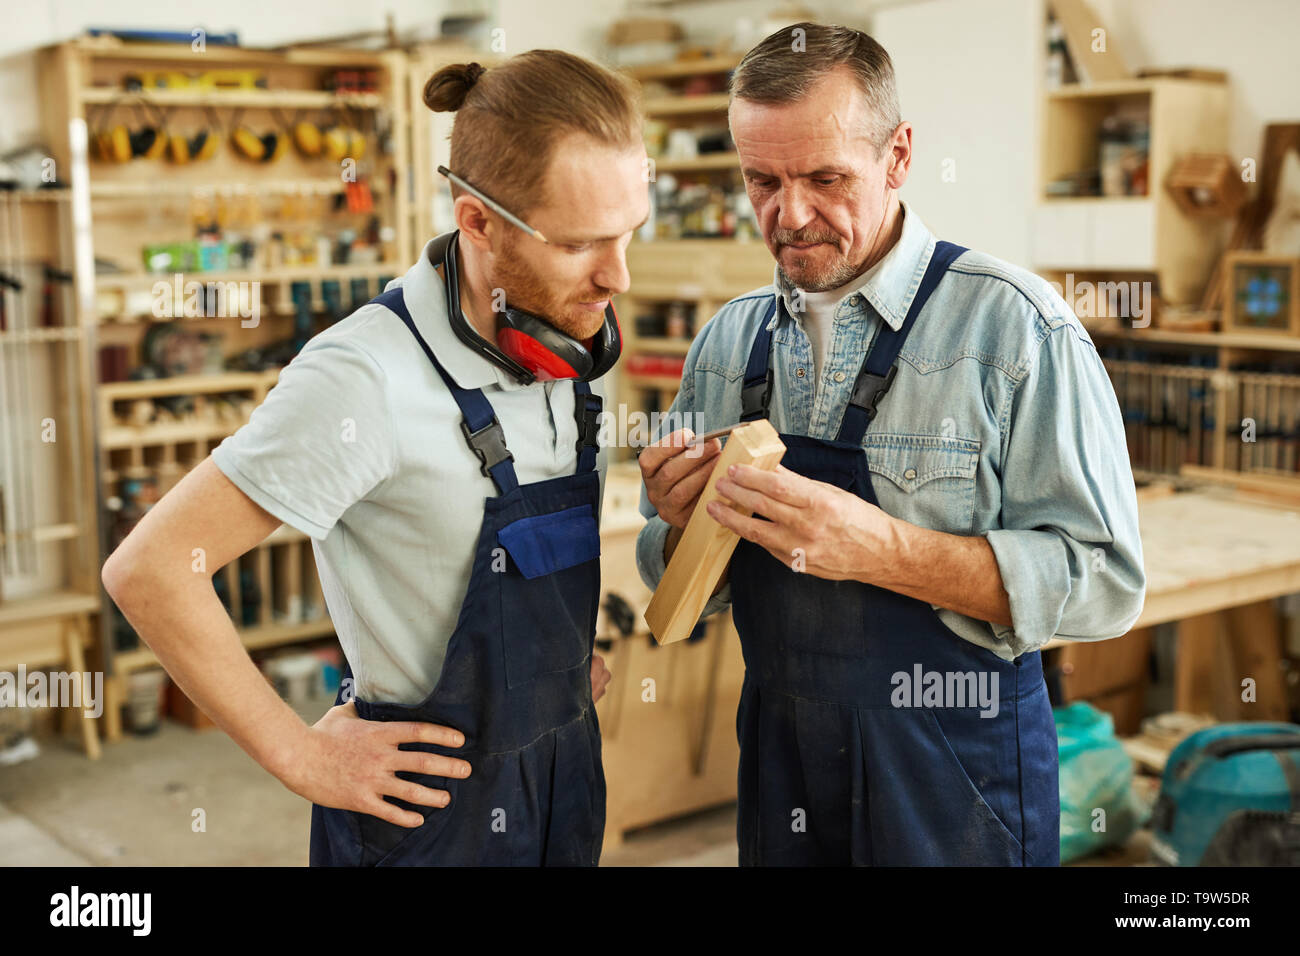 Waist up portrait of senior carpenter teaching apprentice  standing  in joinery workshop, copy space - Stock Image